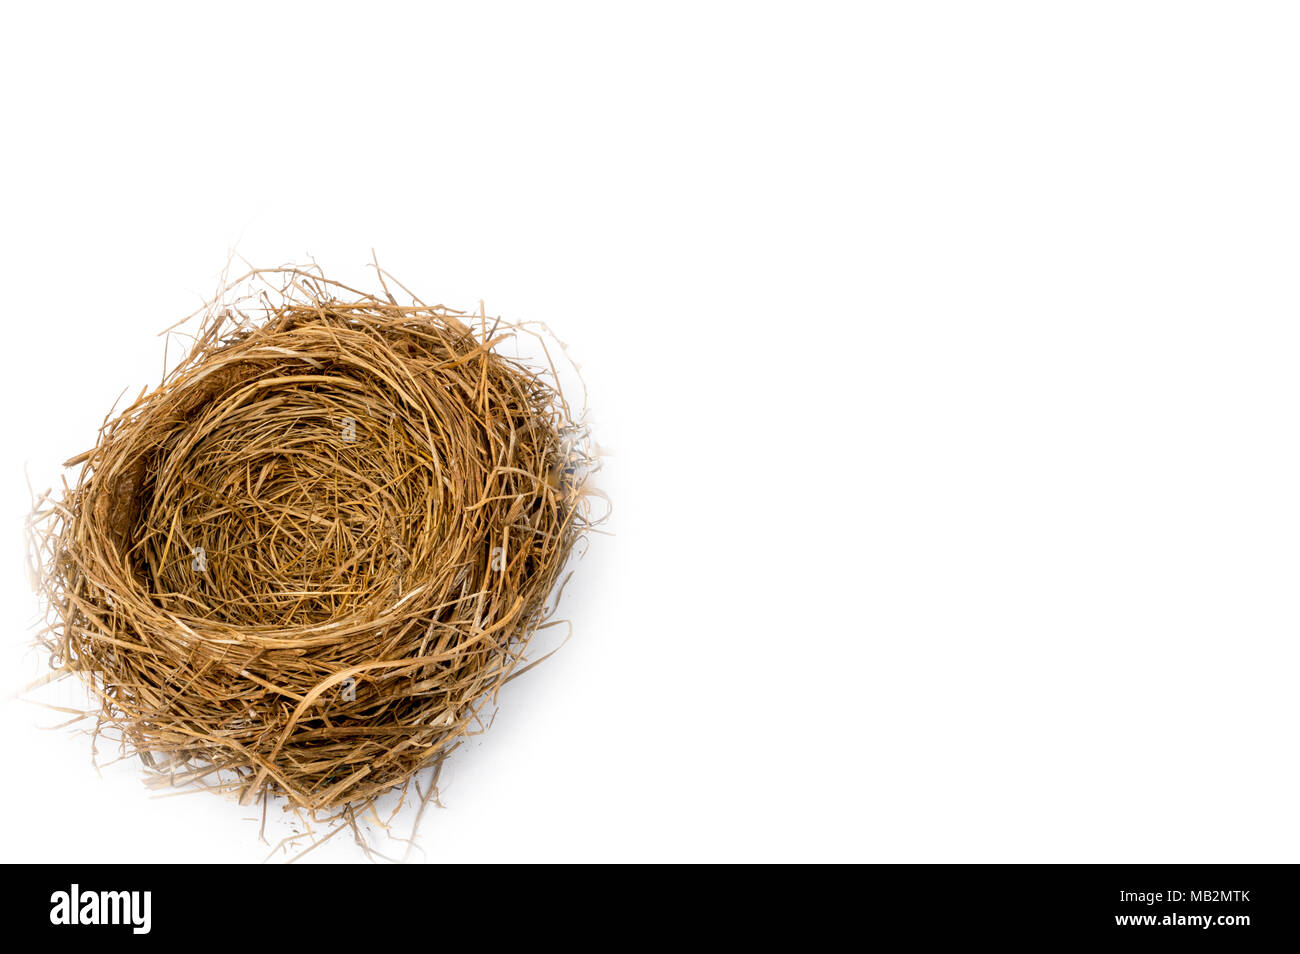 Horizontal shot of a bird's nest in the lower left hand corner of the shot.  The focus is on the center of the nest. - Stock Image